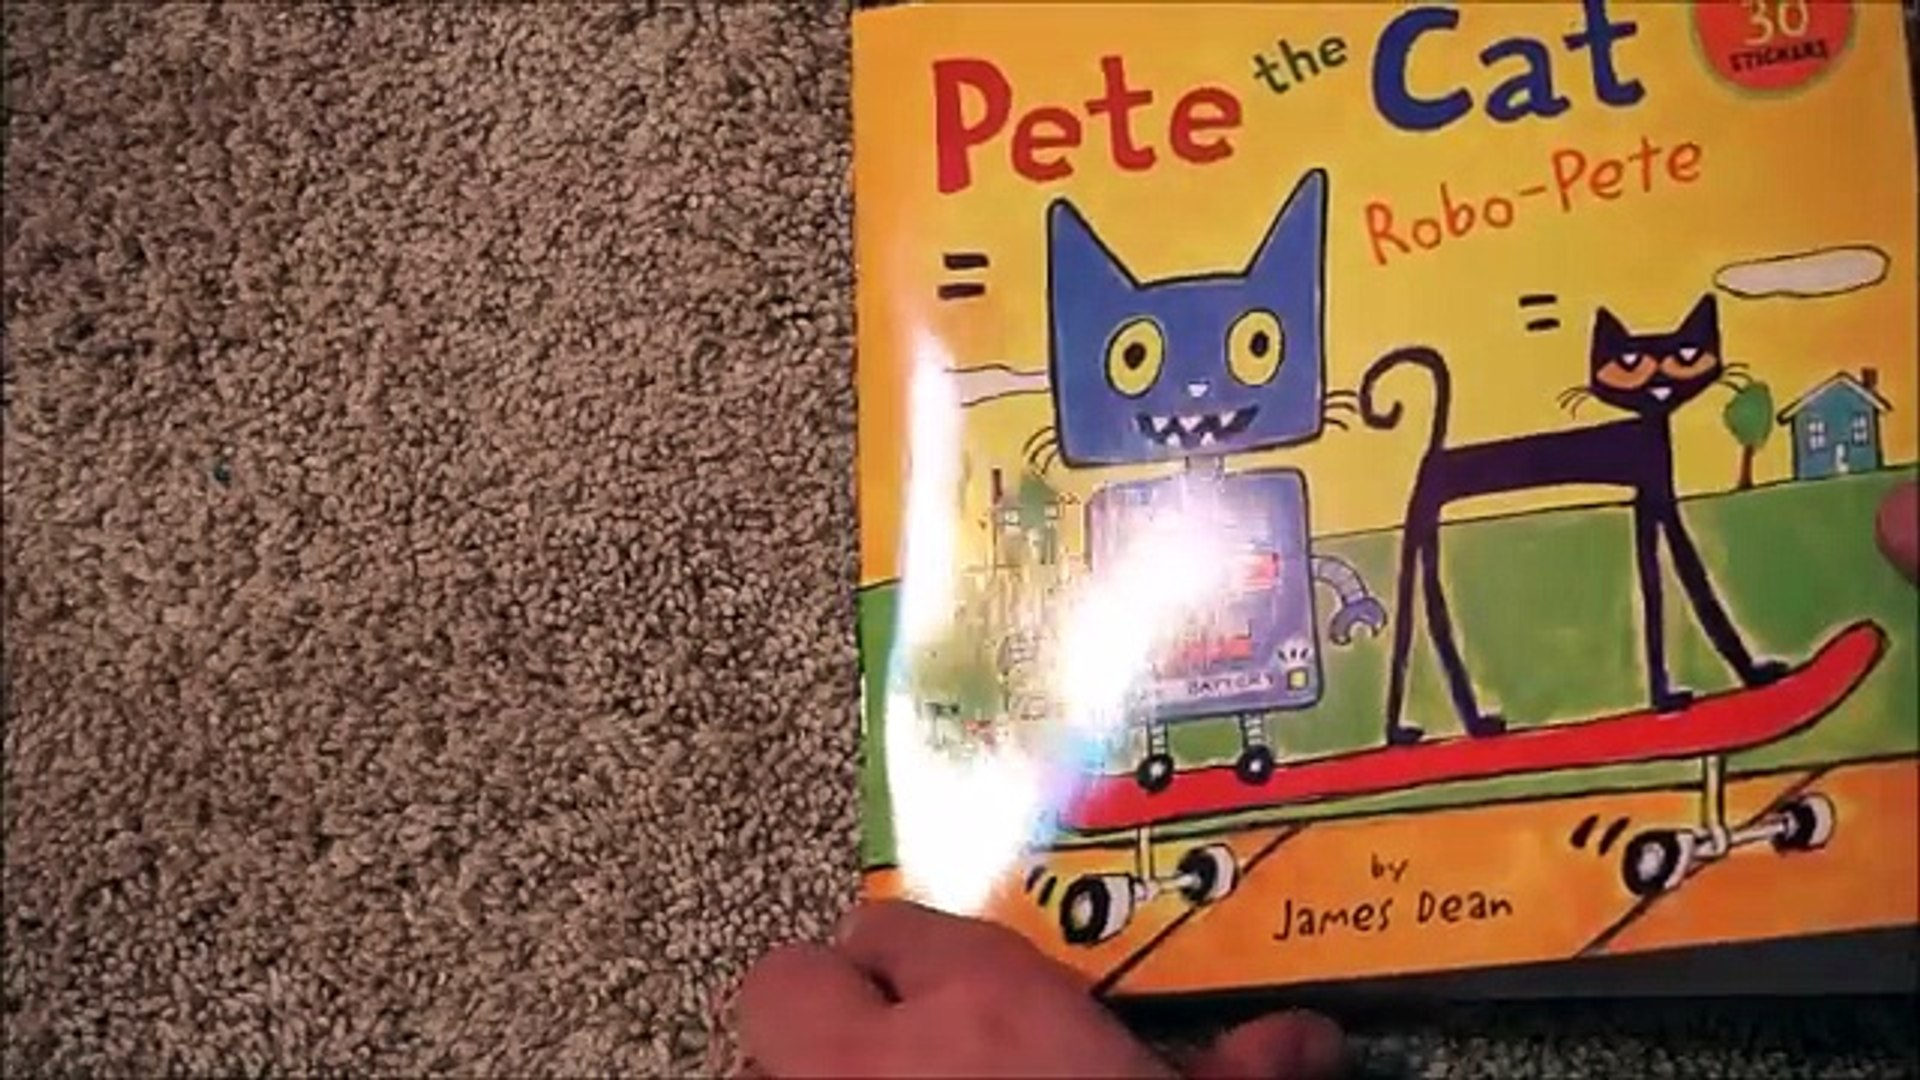 Pete The Cat ~ Robo-Pete Childrens Read Aloud Story Book For Kids By James Dean